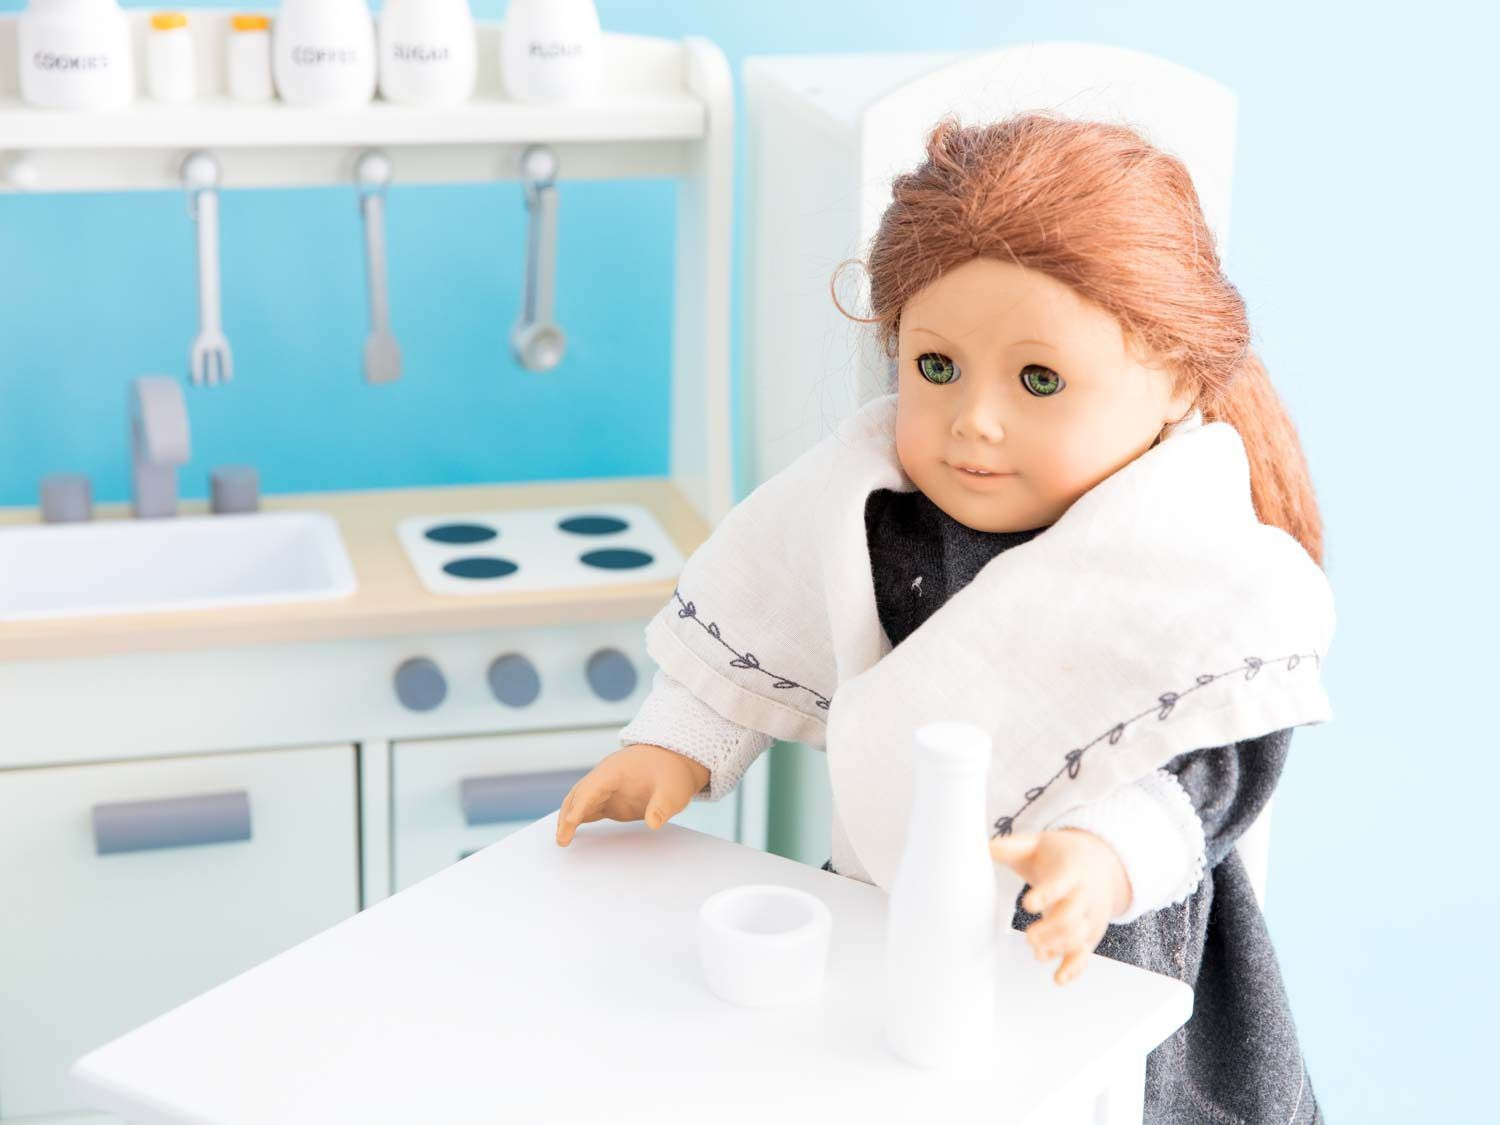 A Felicity doll standing at the corner in a white doll kitchen, over a small white bowl and bottle of milk